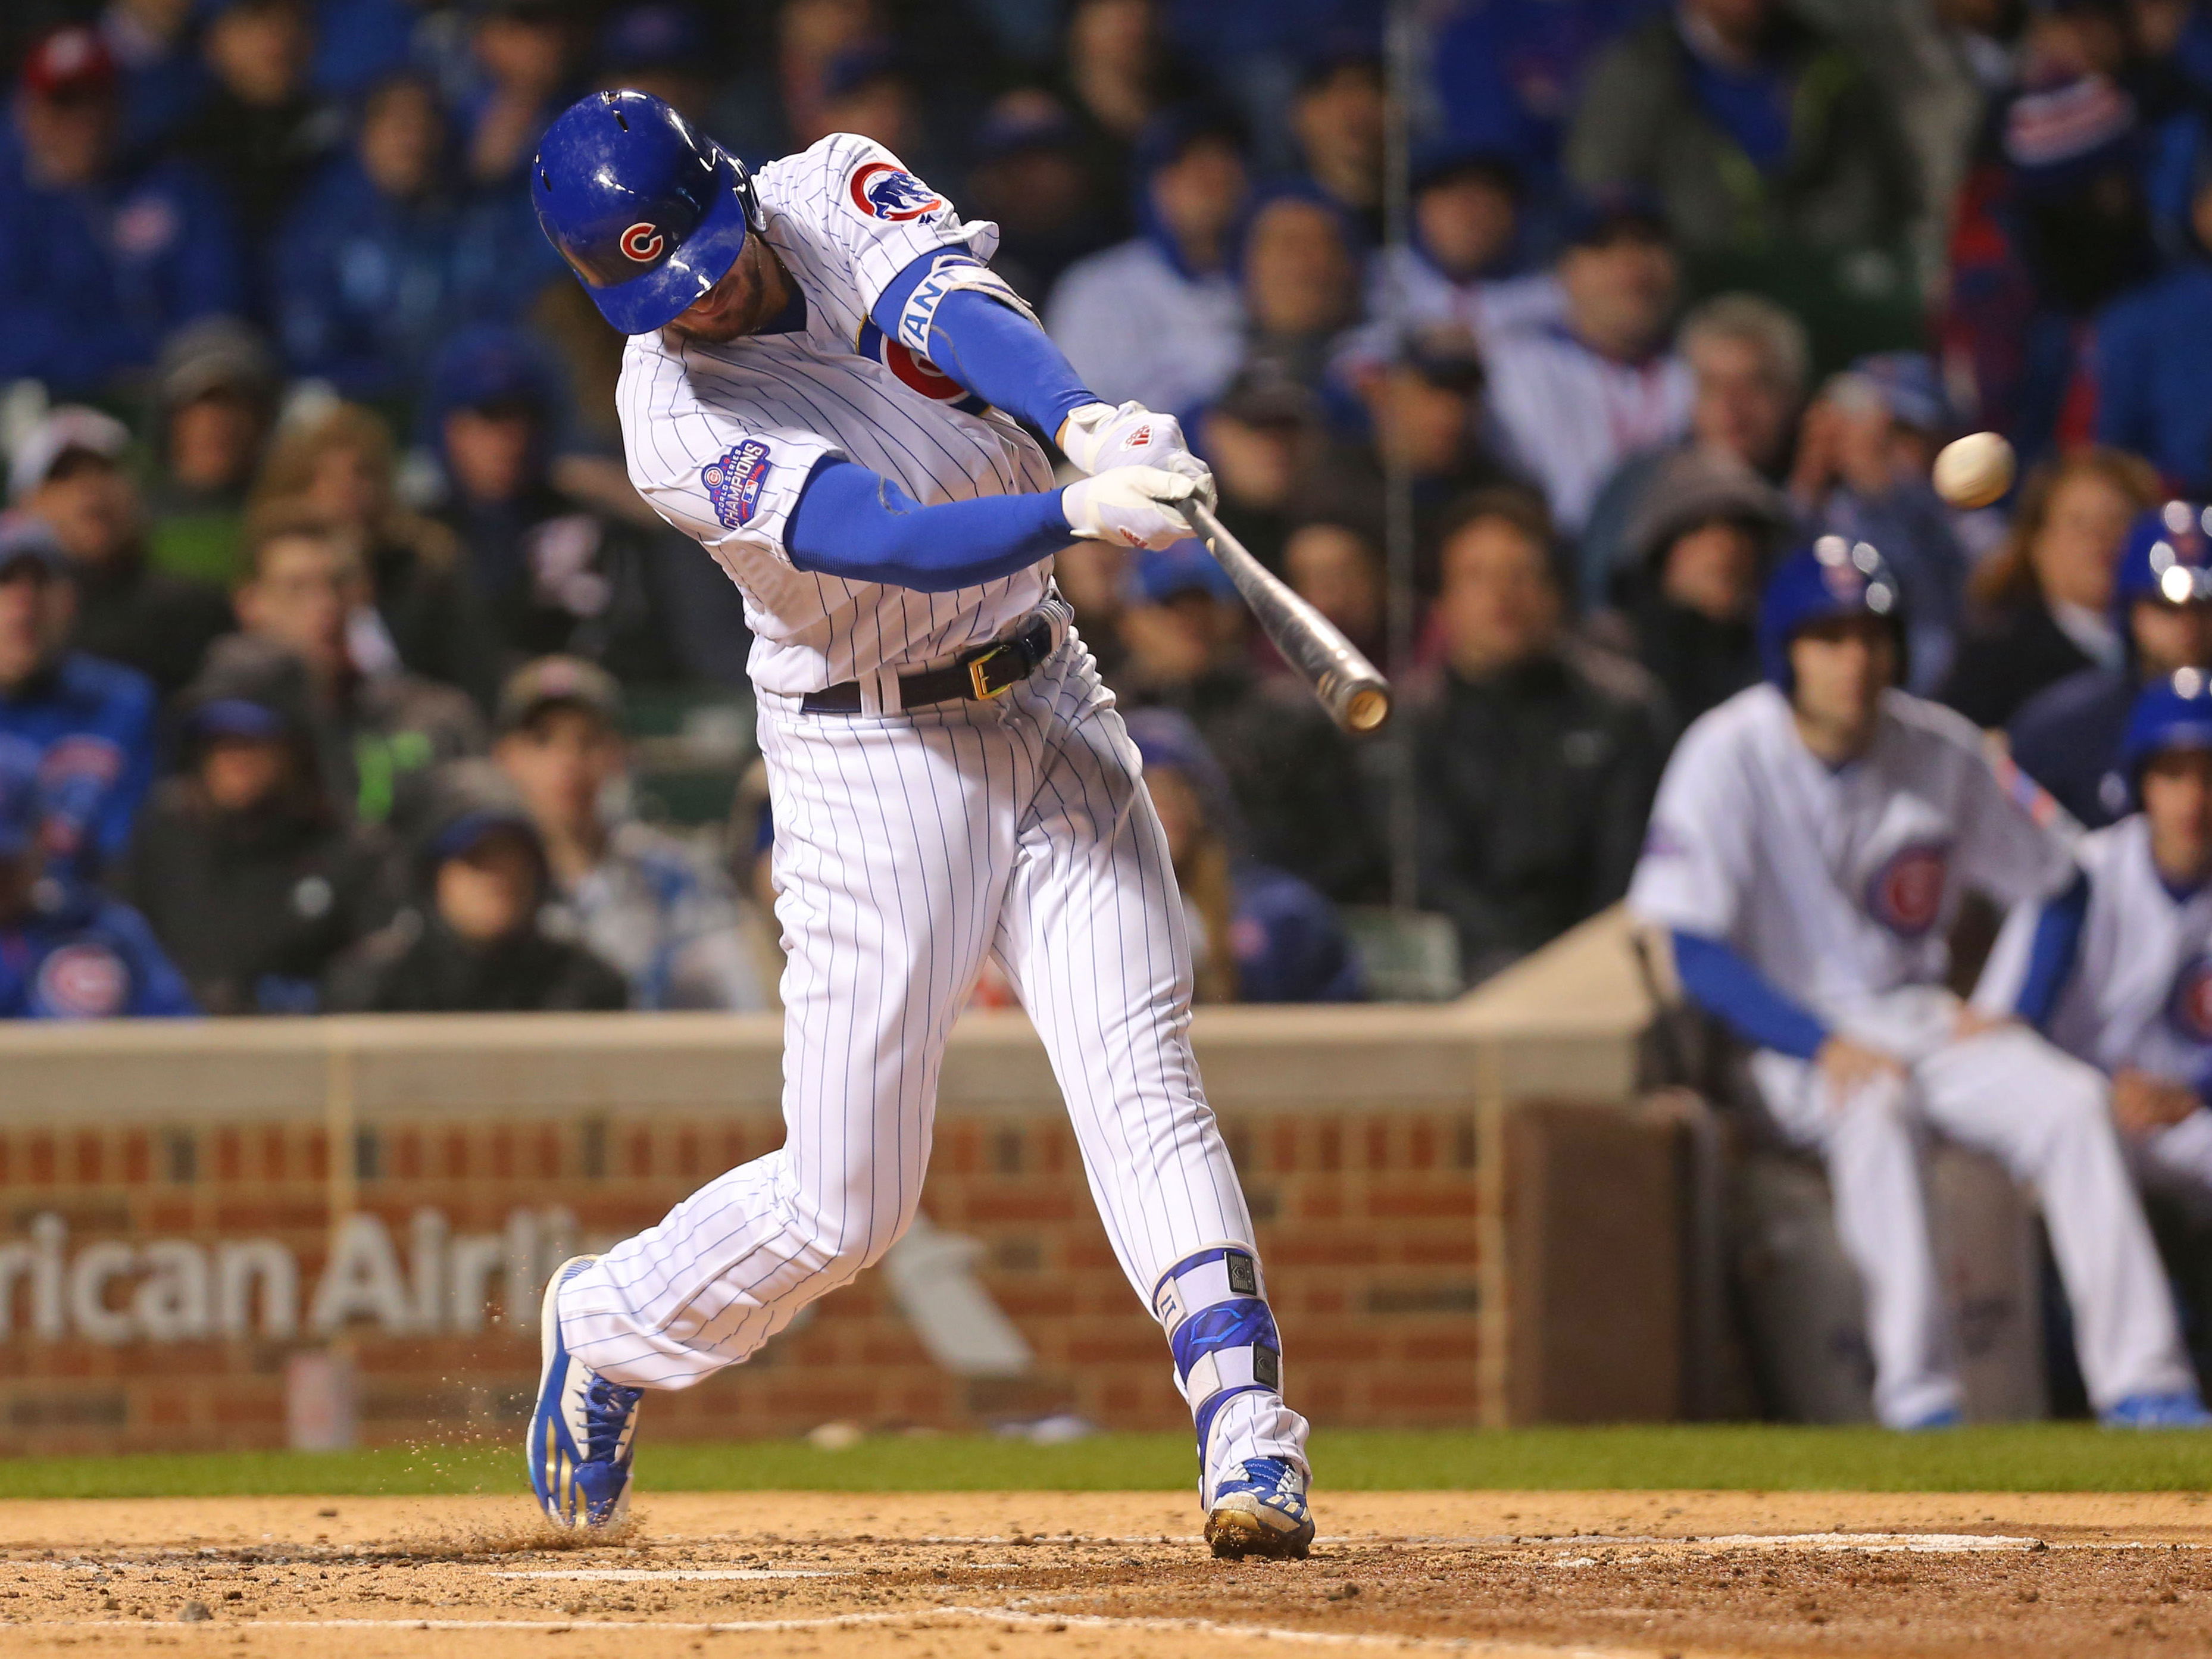 10005562-mlb-los-angeles-dodgers-at-chicago-cubs